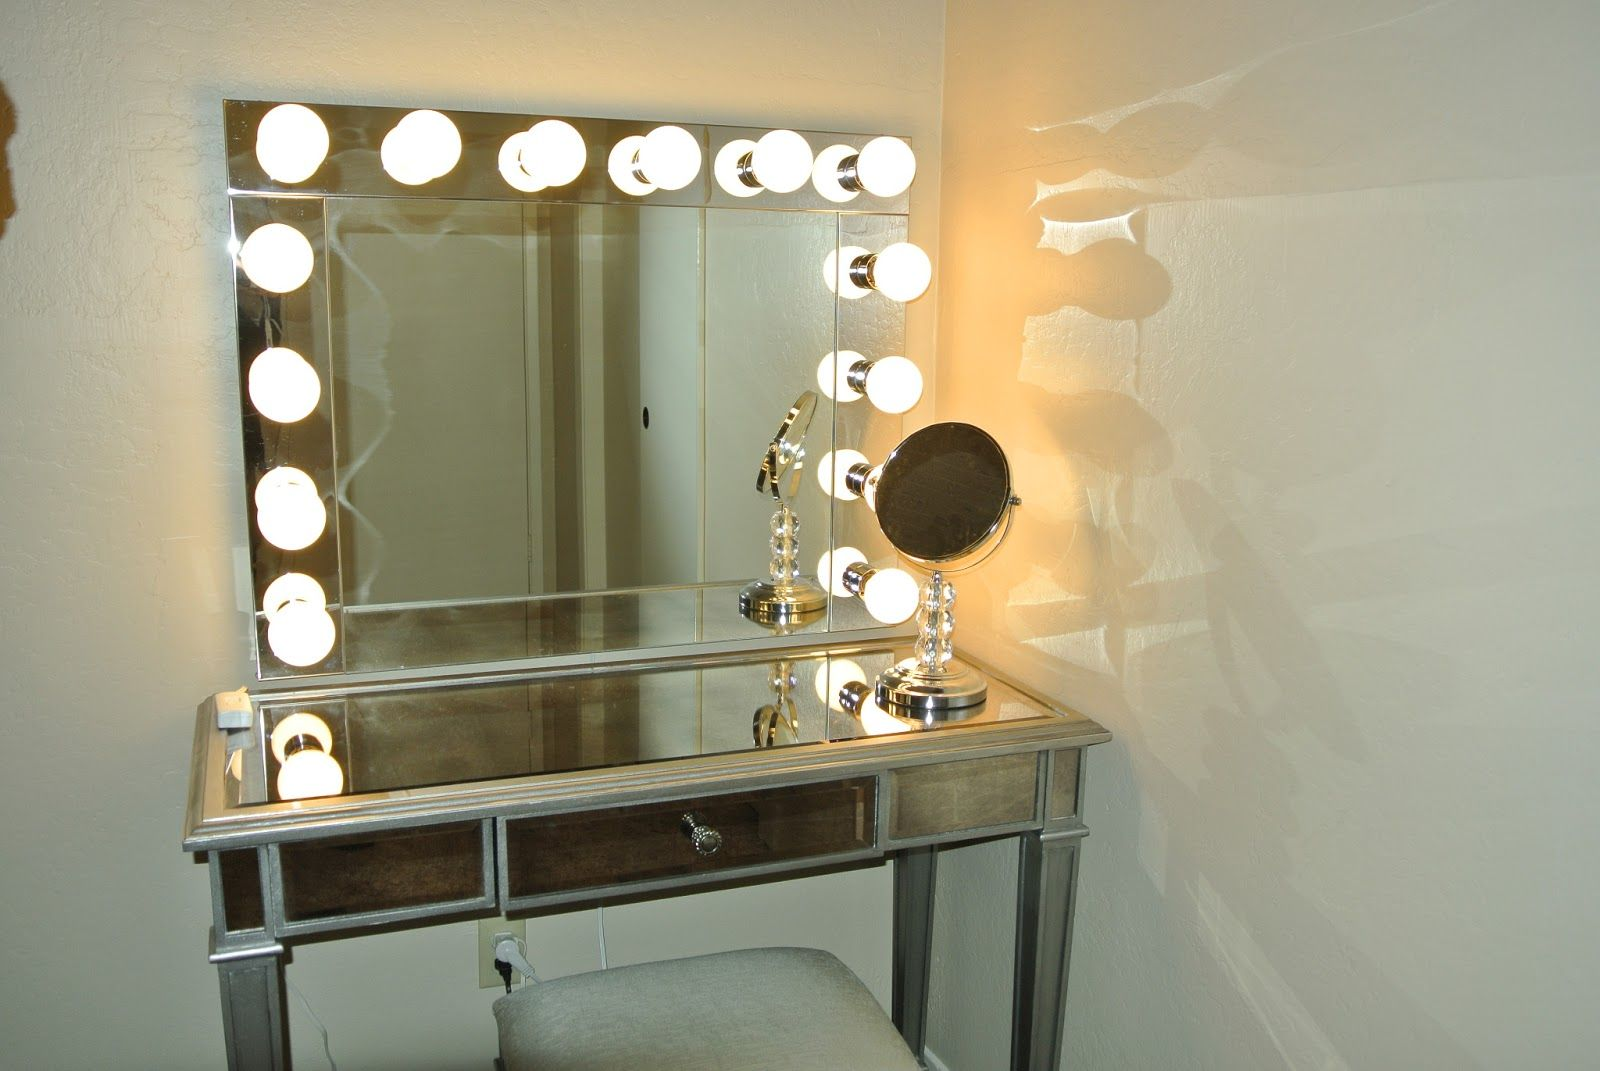 Wall Vanity Mirror With Lights Photo 1 Bedroom Vanity With Lights Diy Vanity Mirror Mirrored Vanity Table